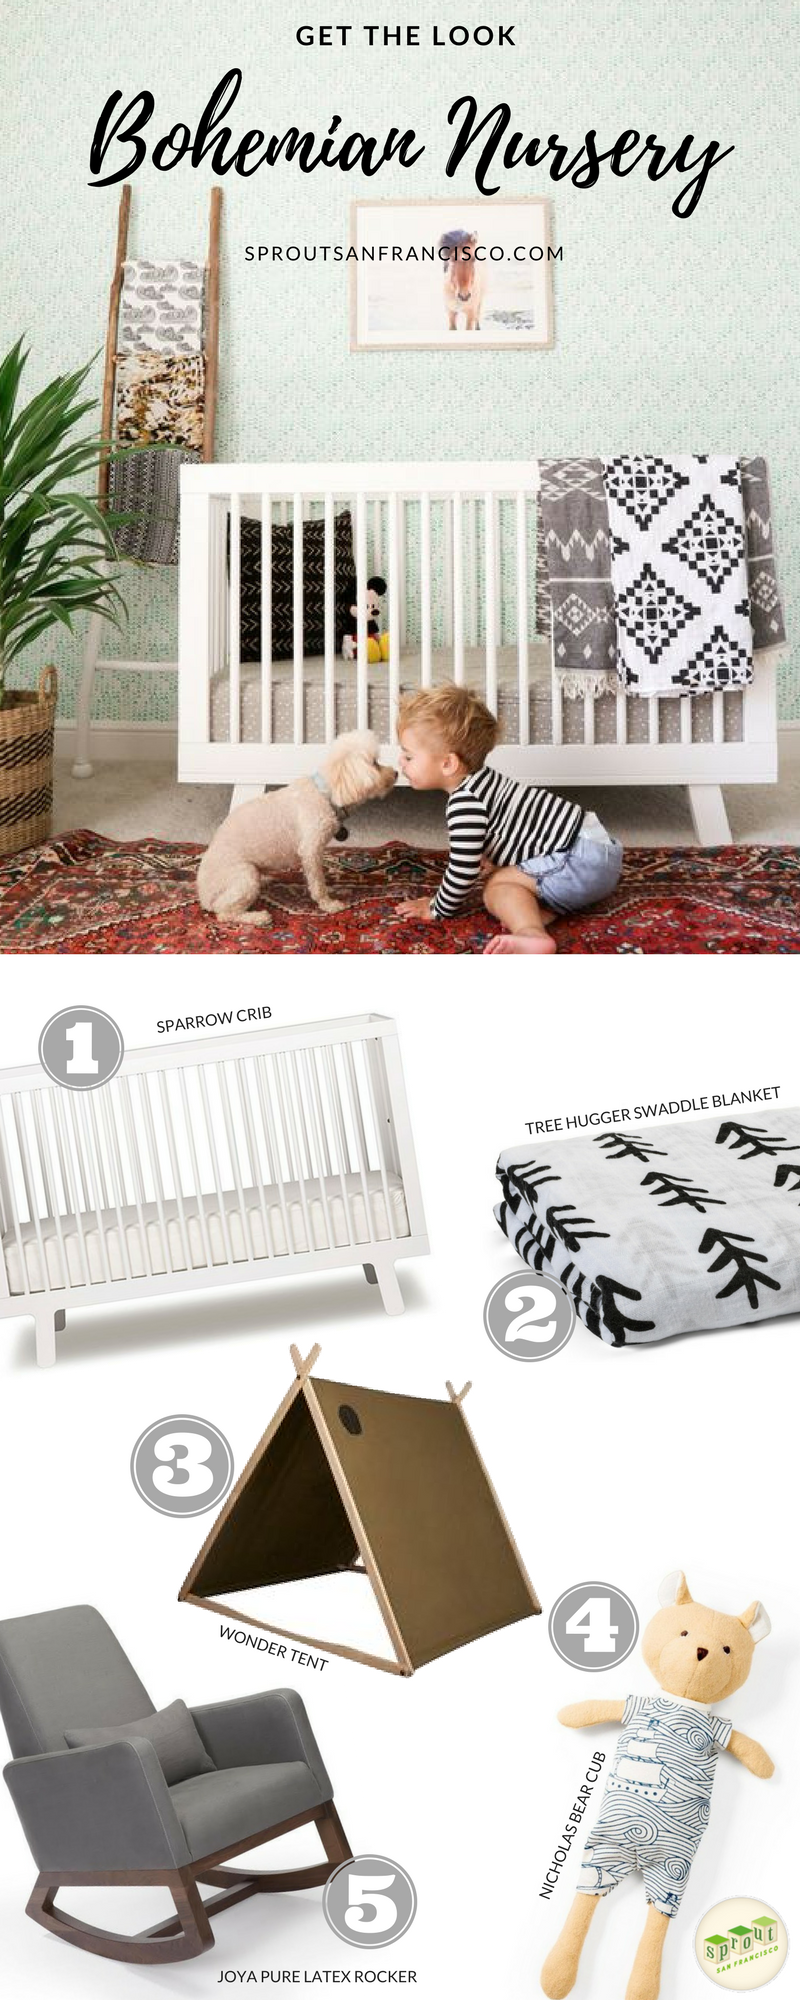 A Perfect Nursery Idea For An Organic Natural With Bohemian Flare Check Out Sprout Sf Your One Stop All Needs